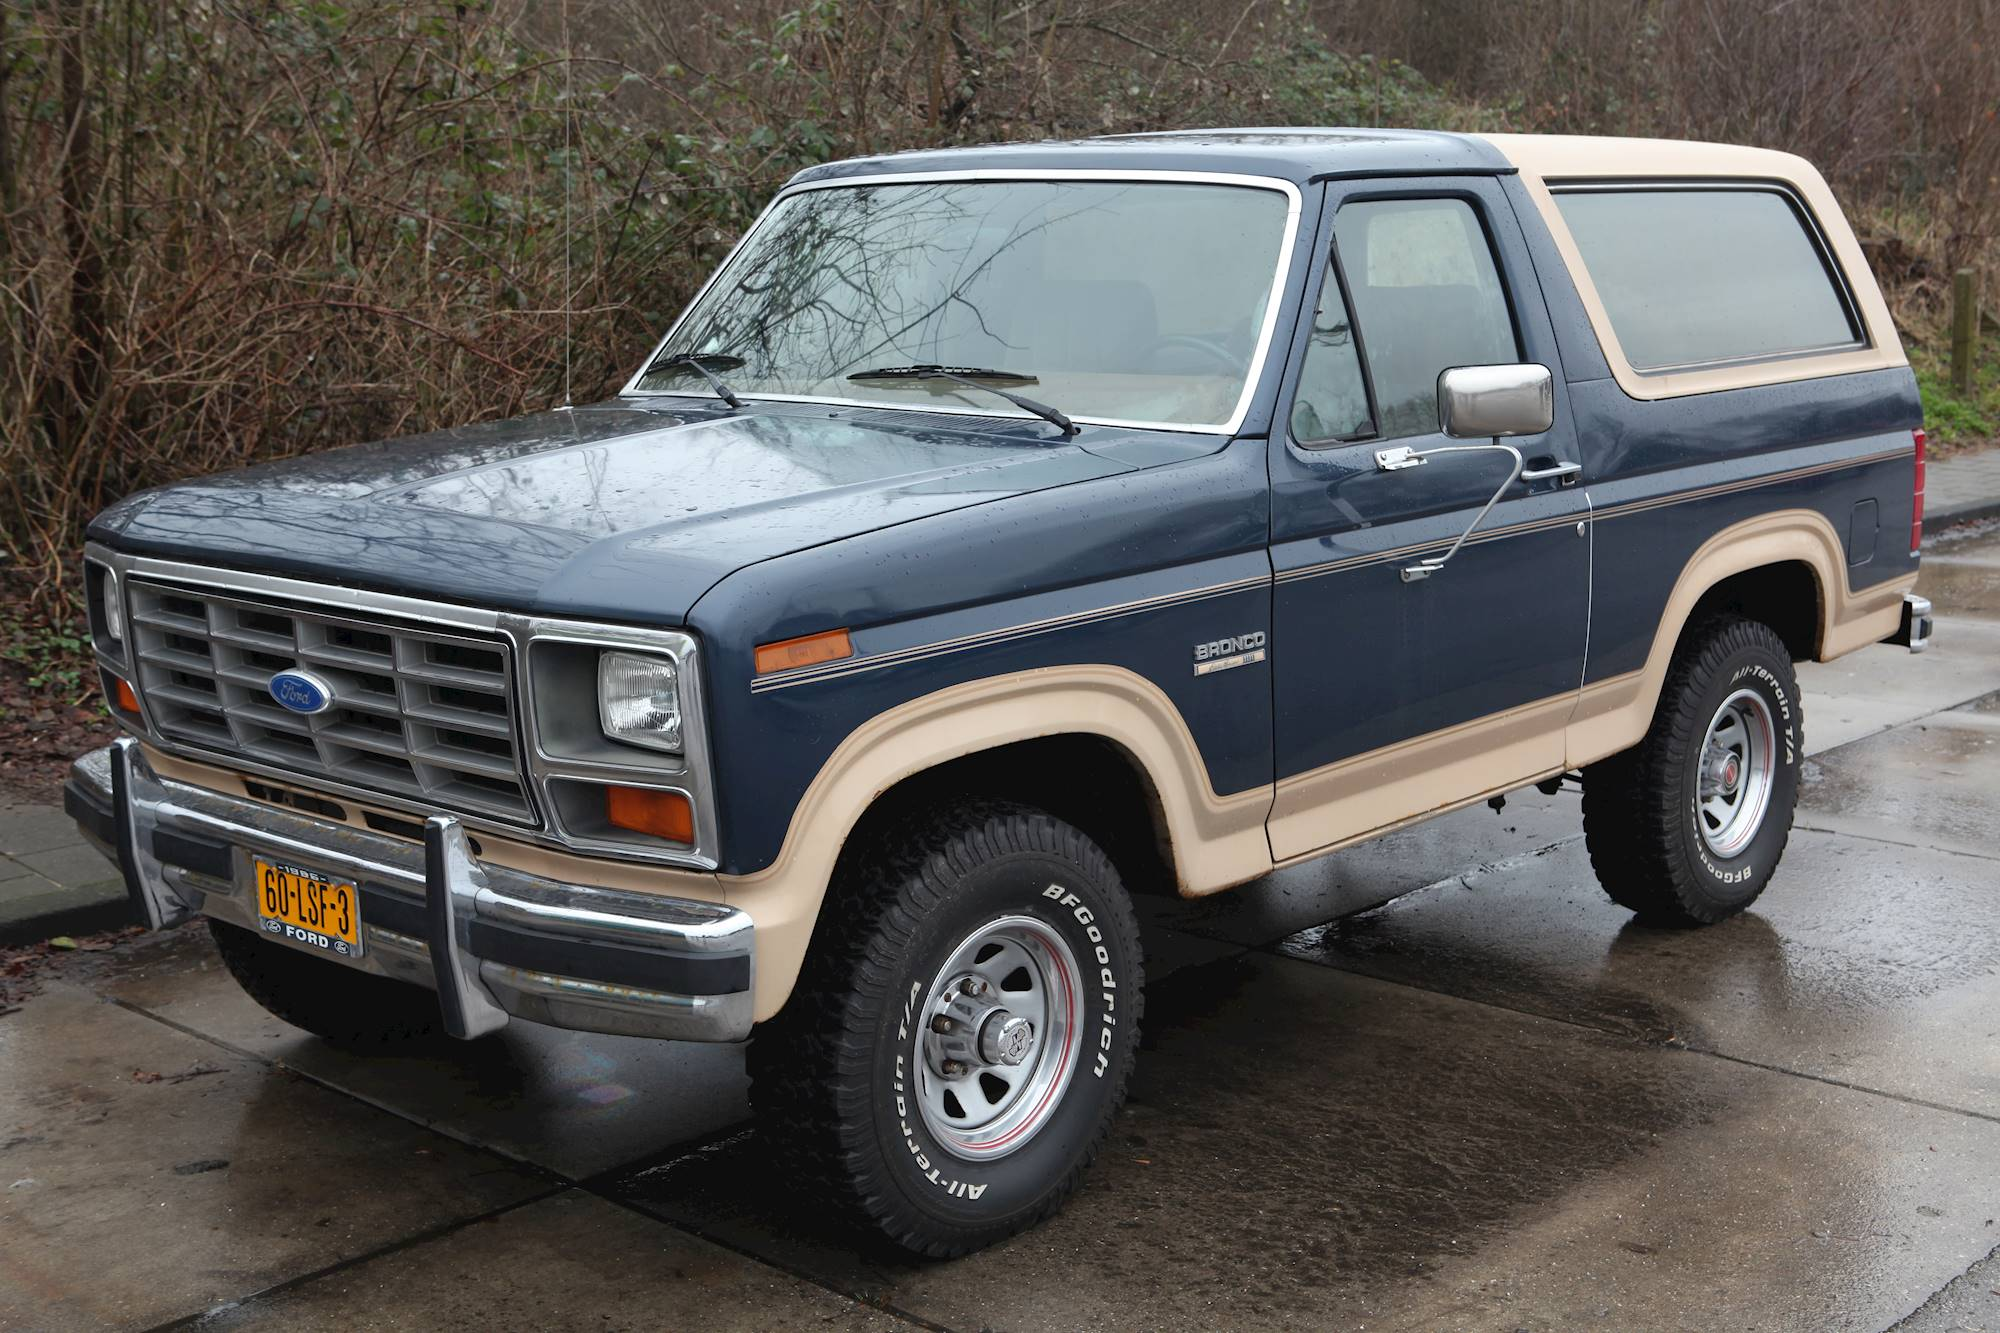 1990 ford bronco xlt 2dr suv 4 9l 4x4 manual 1990 ford bronco xlt 2dr suv 4 9l 4x4